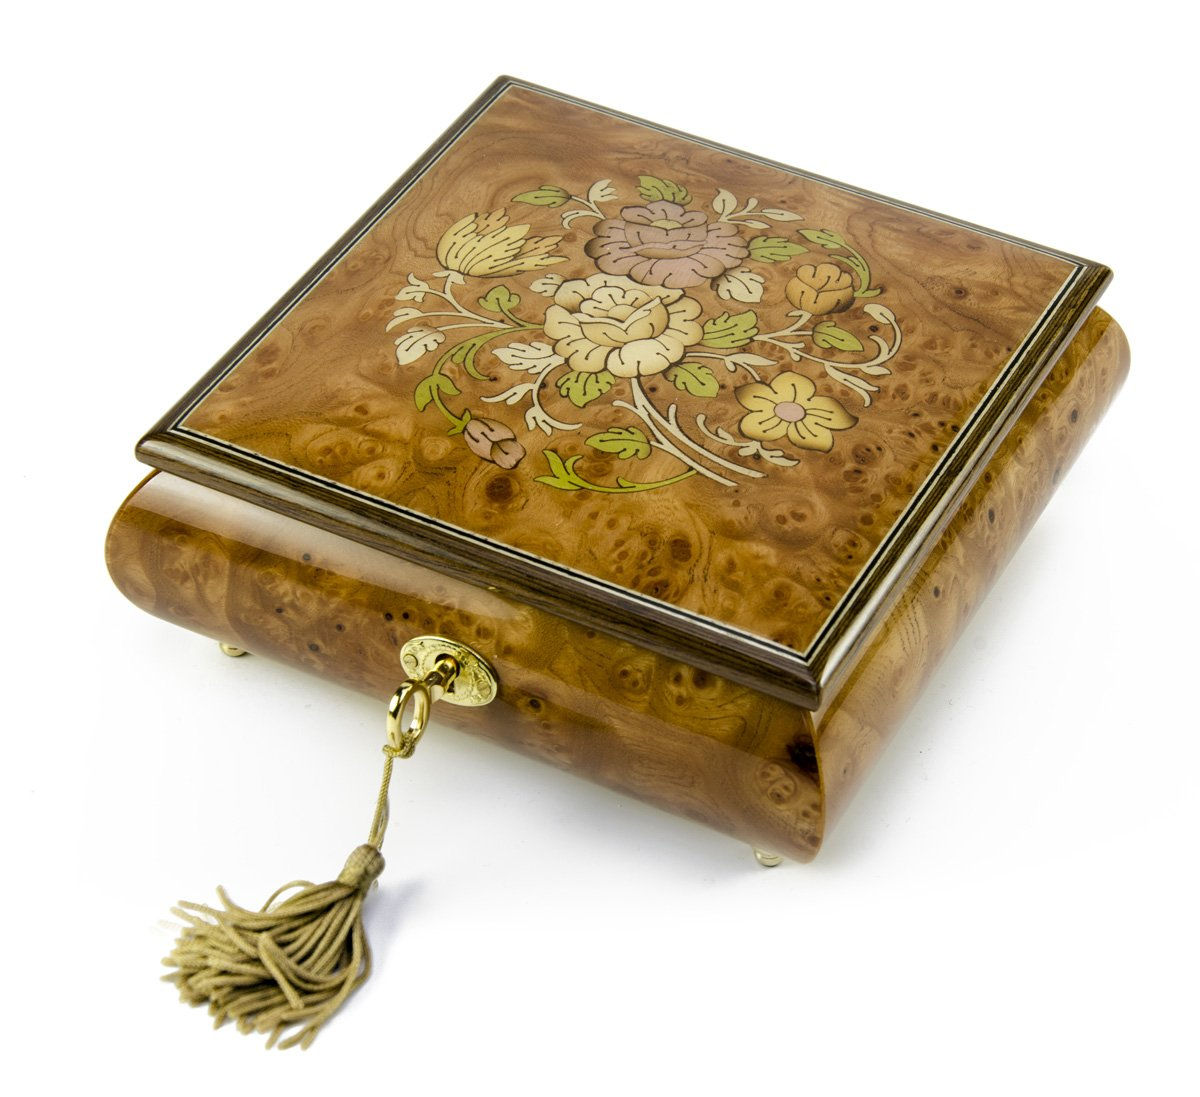 Handcrafted 18 Note Floral Inlay Music Box with Lock and Key - Over 400 Song Choices - Tiny Bubbles (Lpobber/Don Ho) Swiss